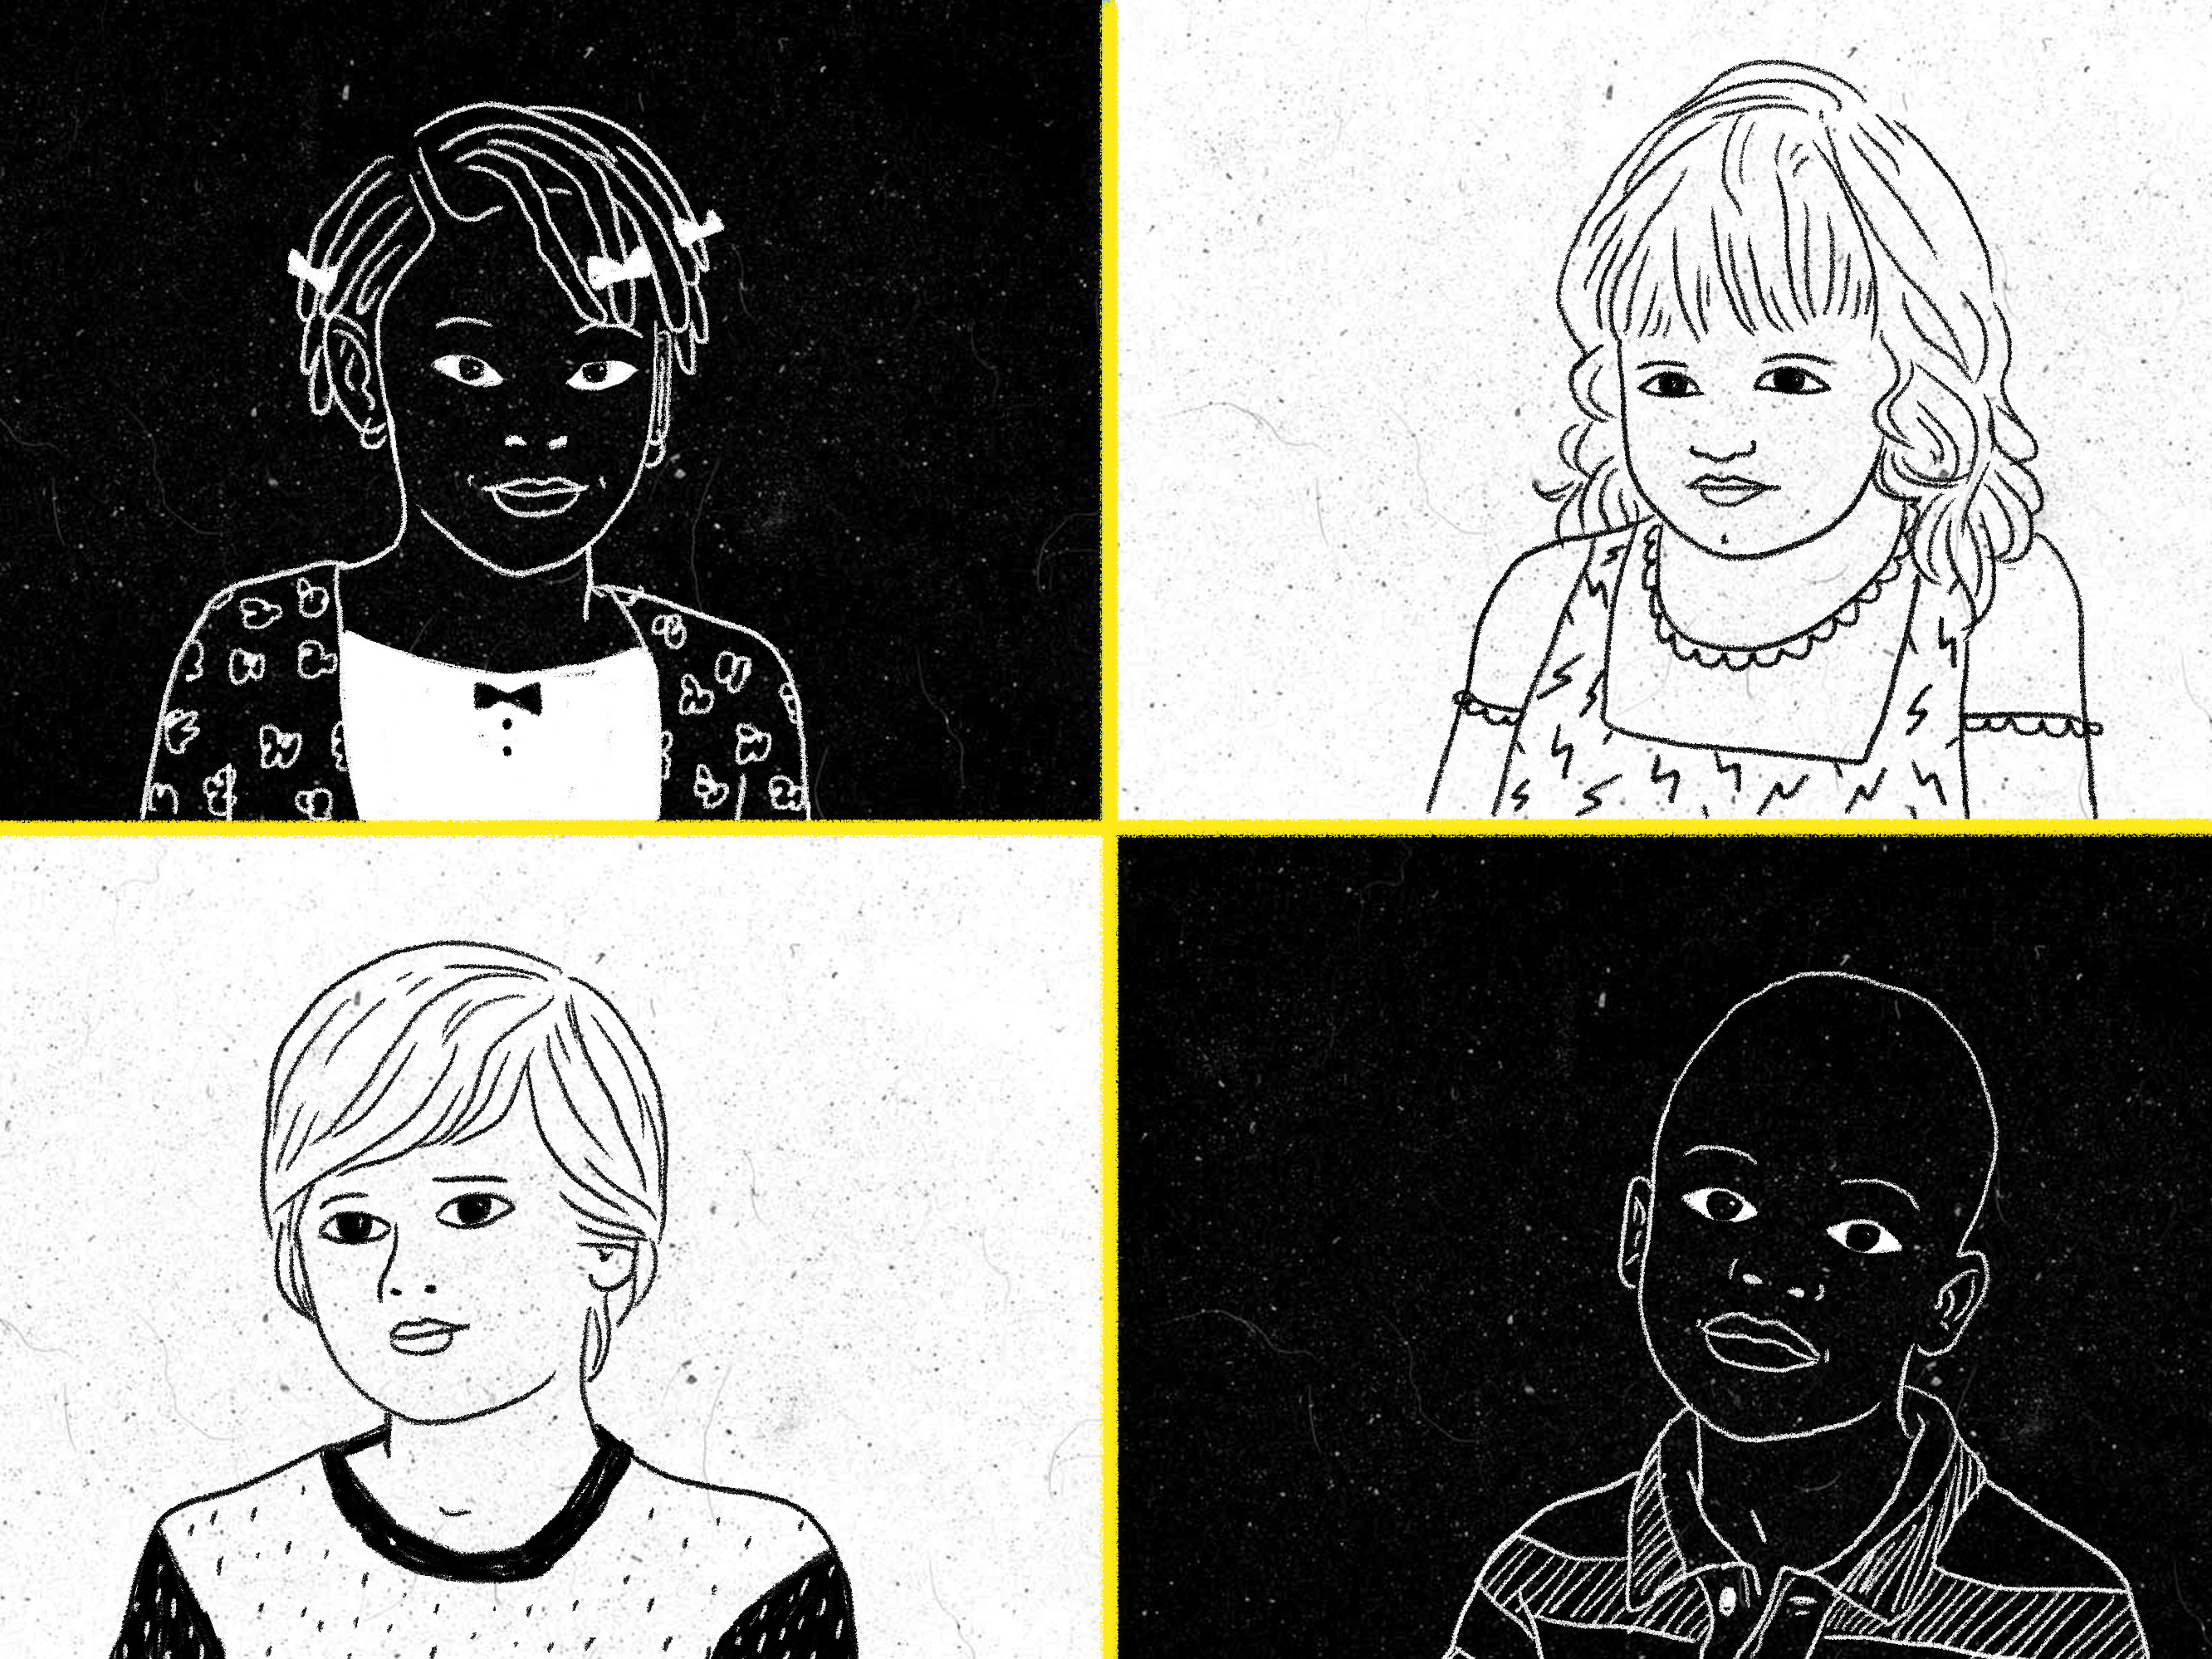 Suspensions Are Down In U.S. Schools But Large Racial Gaps Remain